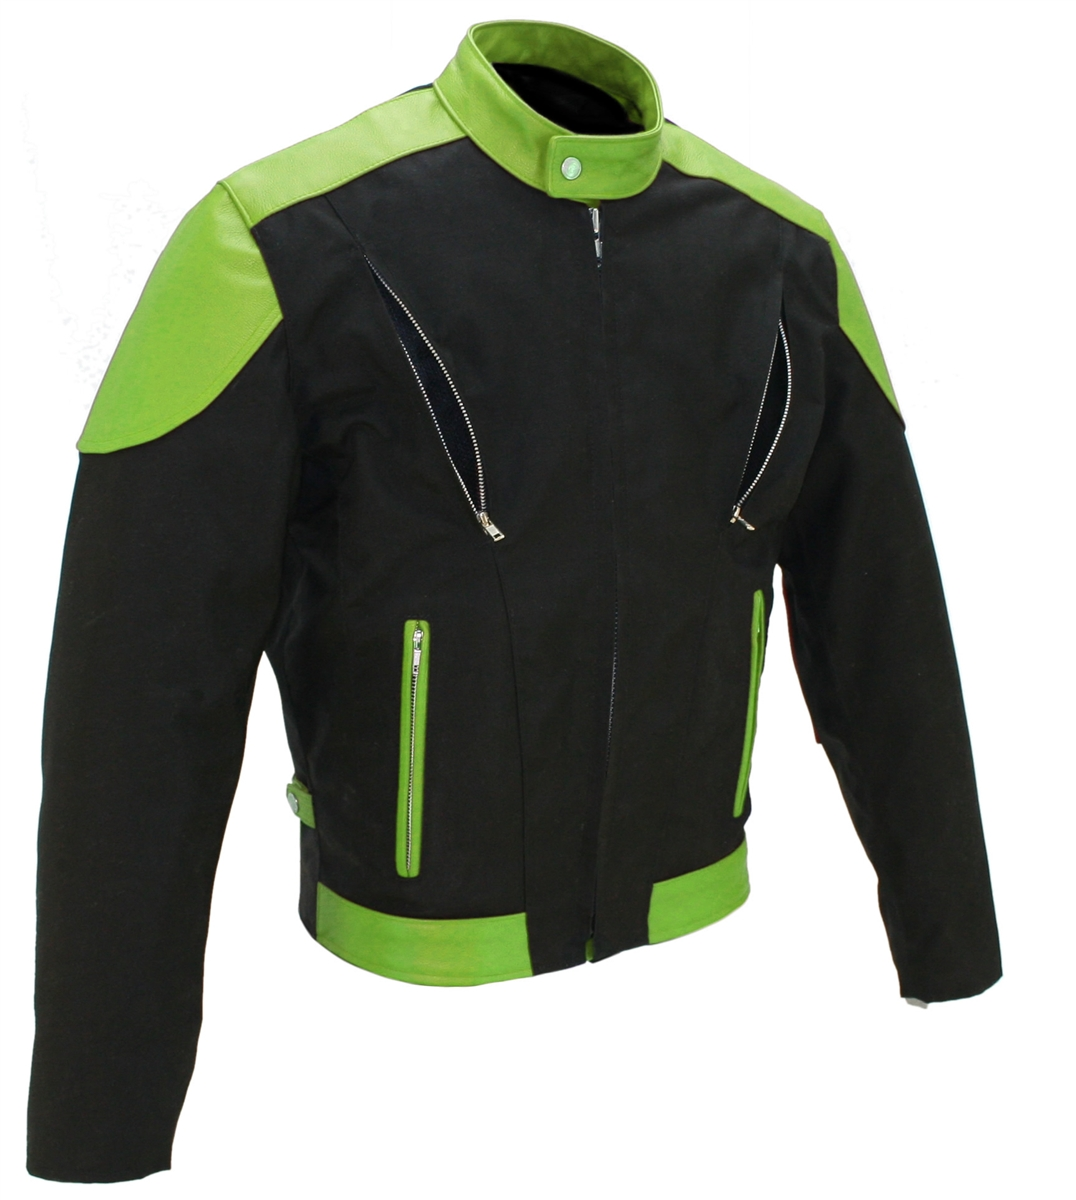 Men's Vented Leather & Cordura Jacket Black / Lime Green. This jacket is made of 1.2-1.4 soft premium cowhide and Denier Cordura 1000 (Heavy Duty Textile). Front and Rear Vents with heavy mesh liner for full ventilation - Too big or too small - adjustable